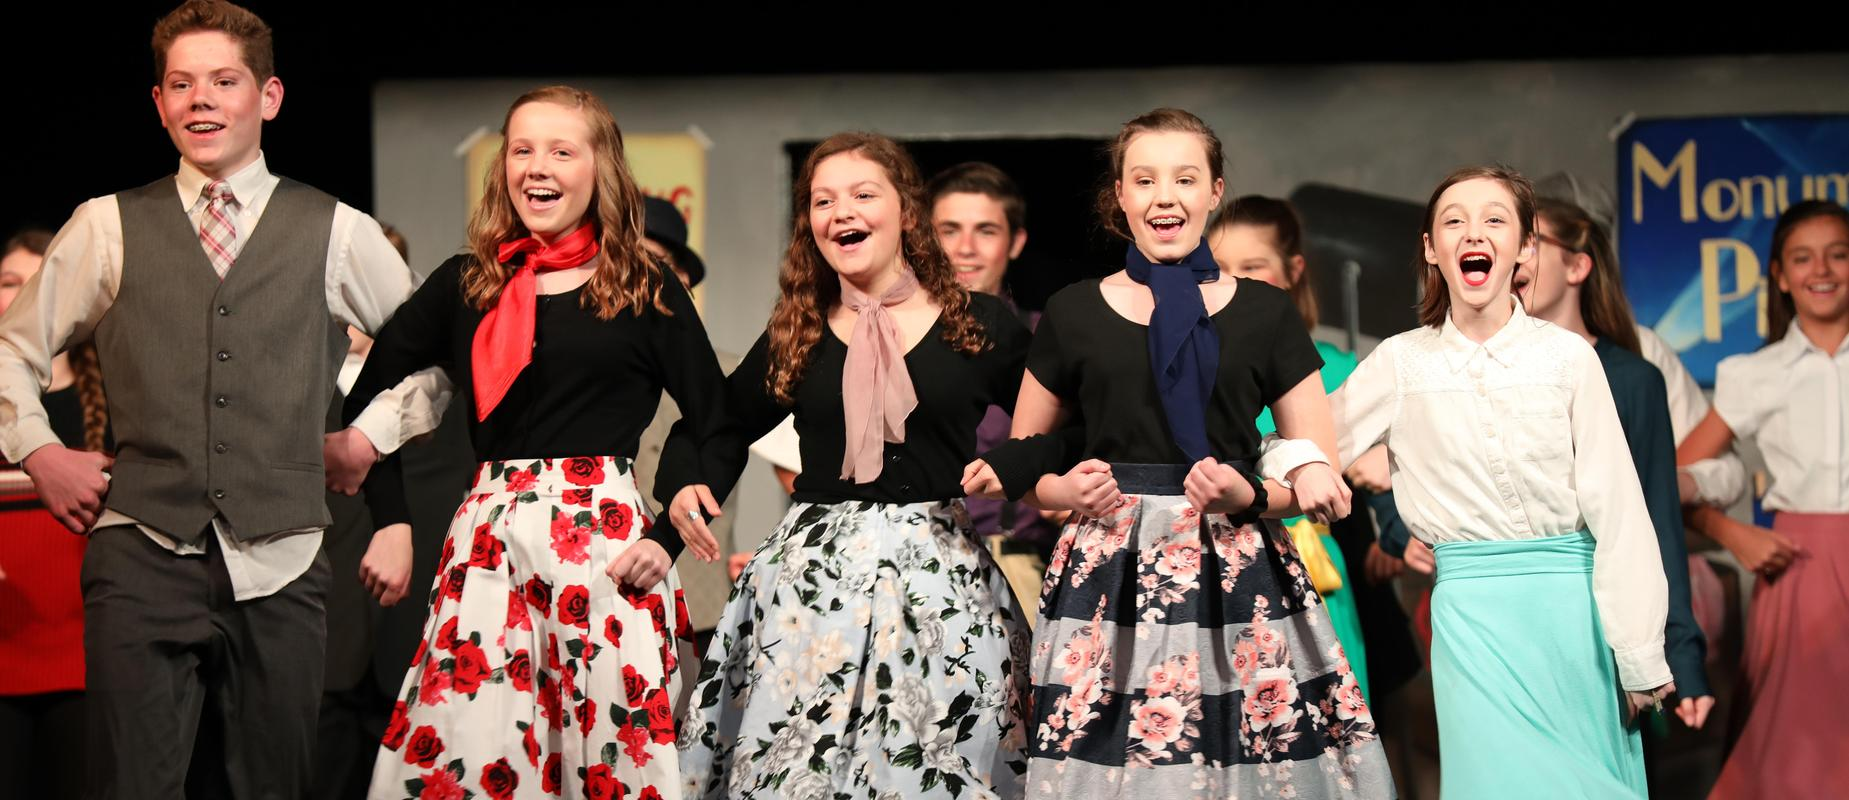 Singin' in the Rain Jr. Musical cast members singing